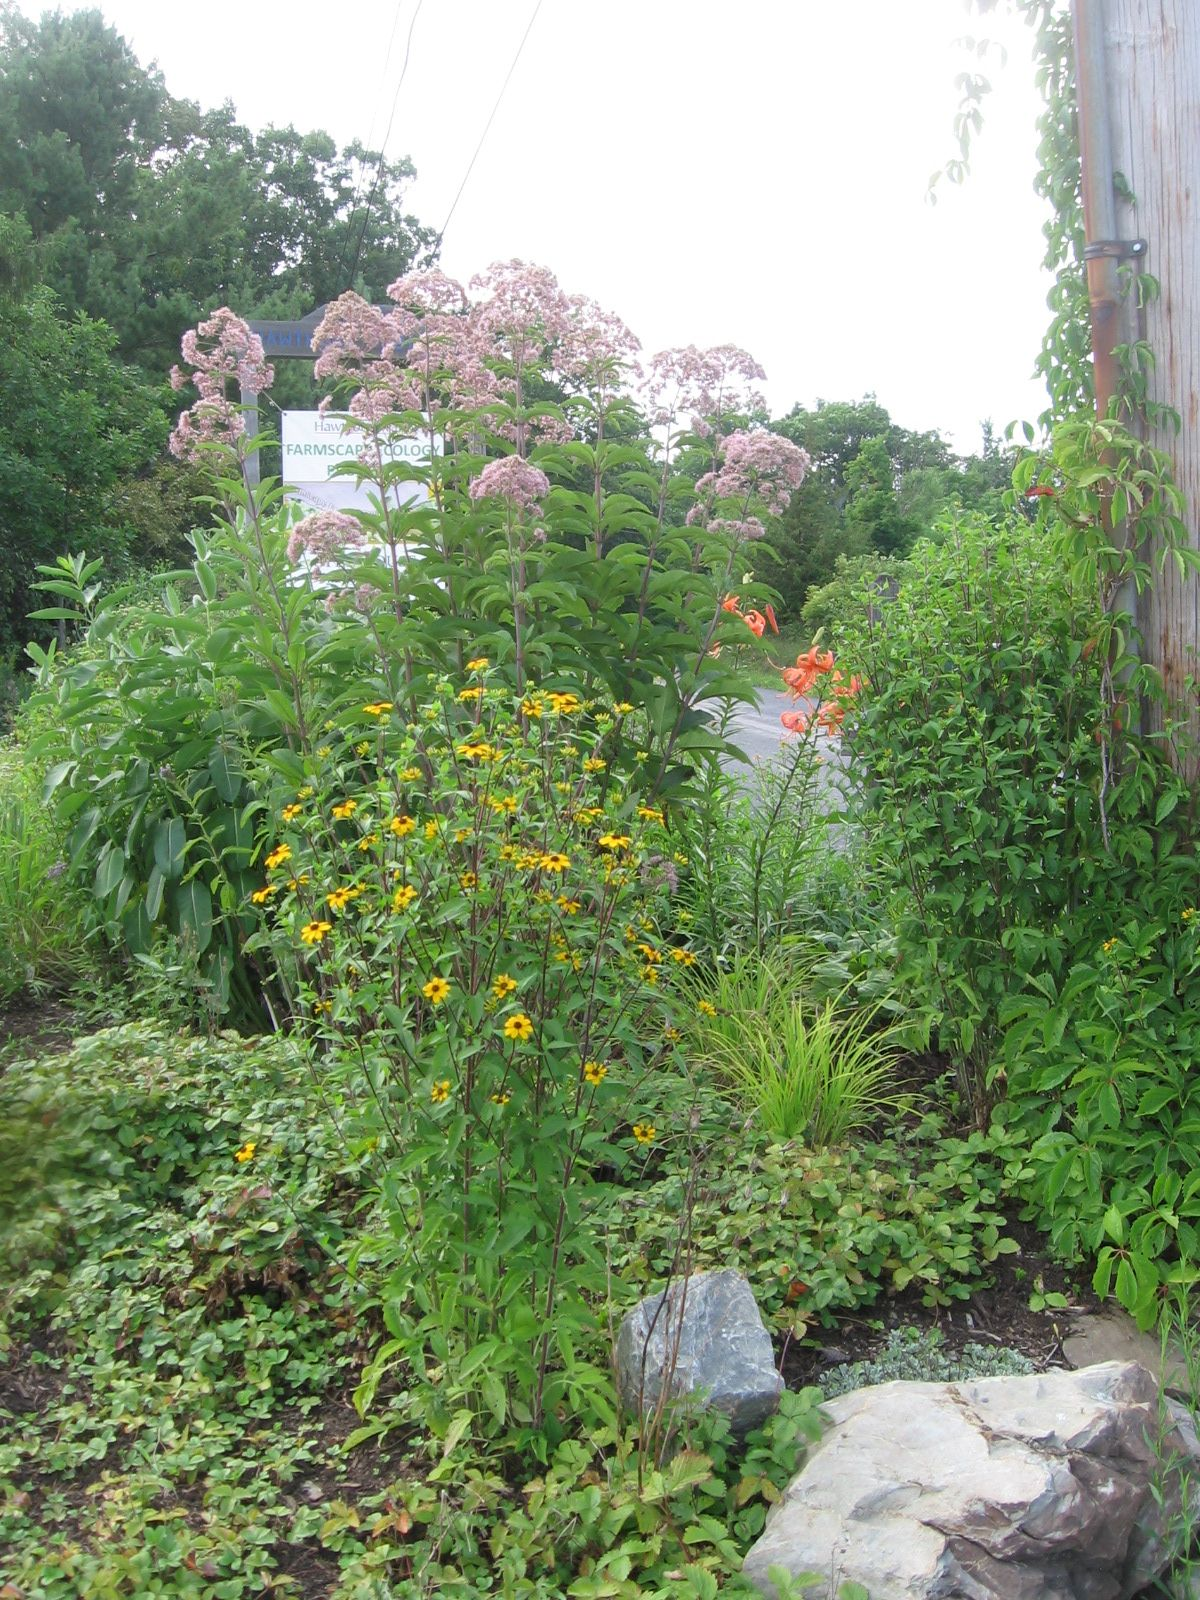 Roadside Garden in July 2012